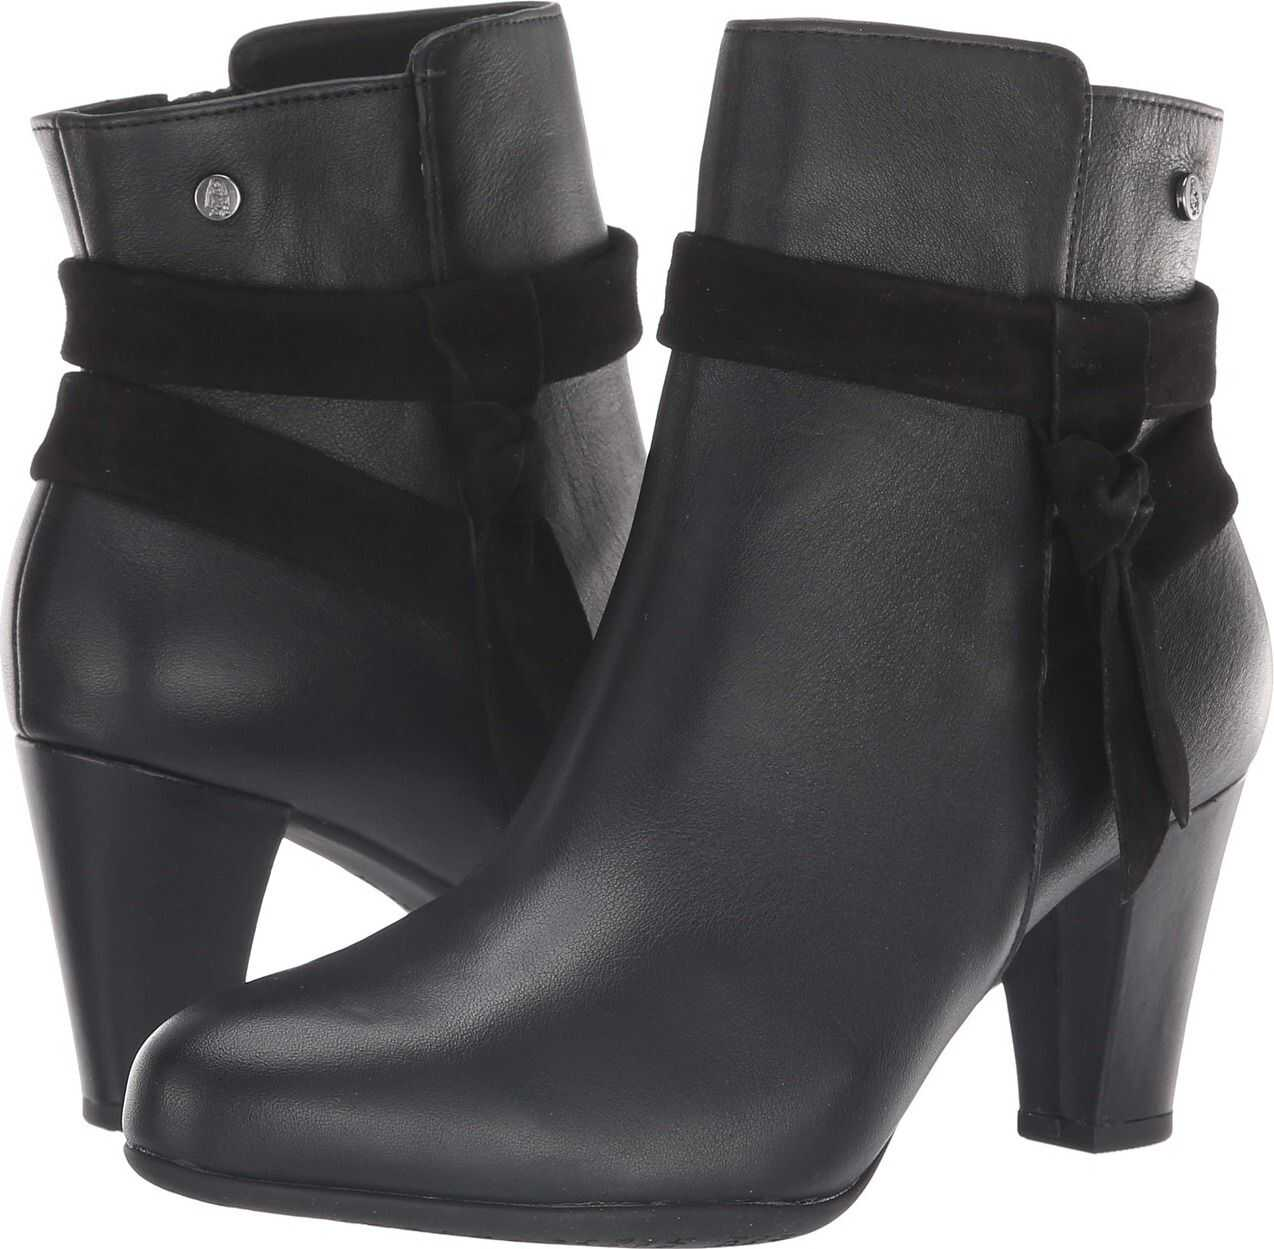 Hush Puppies Meaghan Bow Boot Black Leather